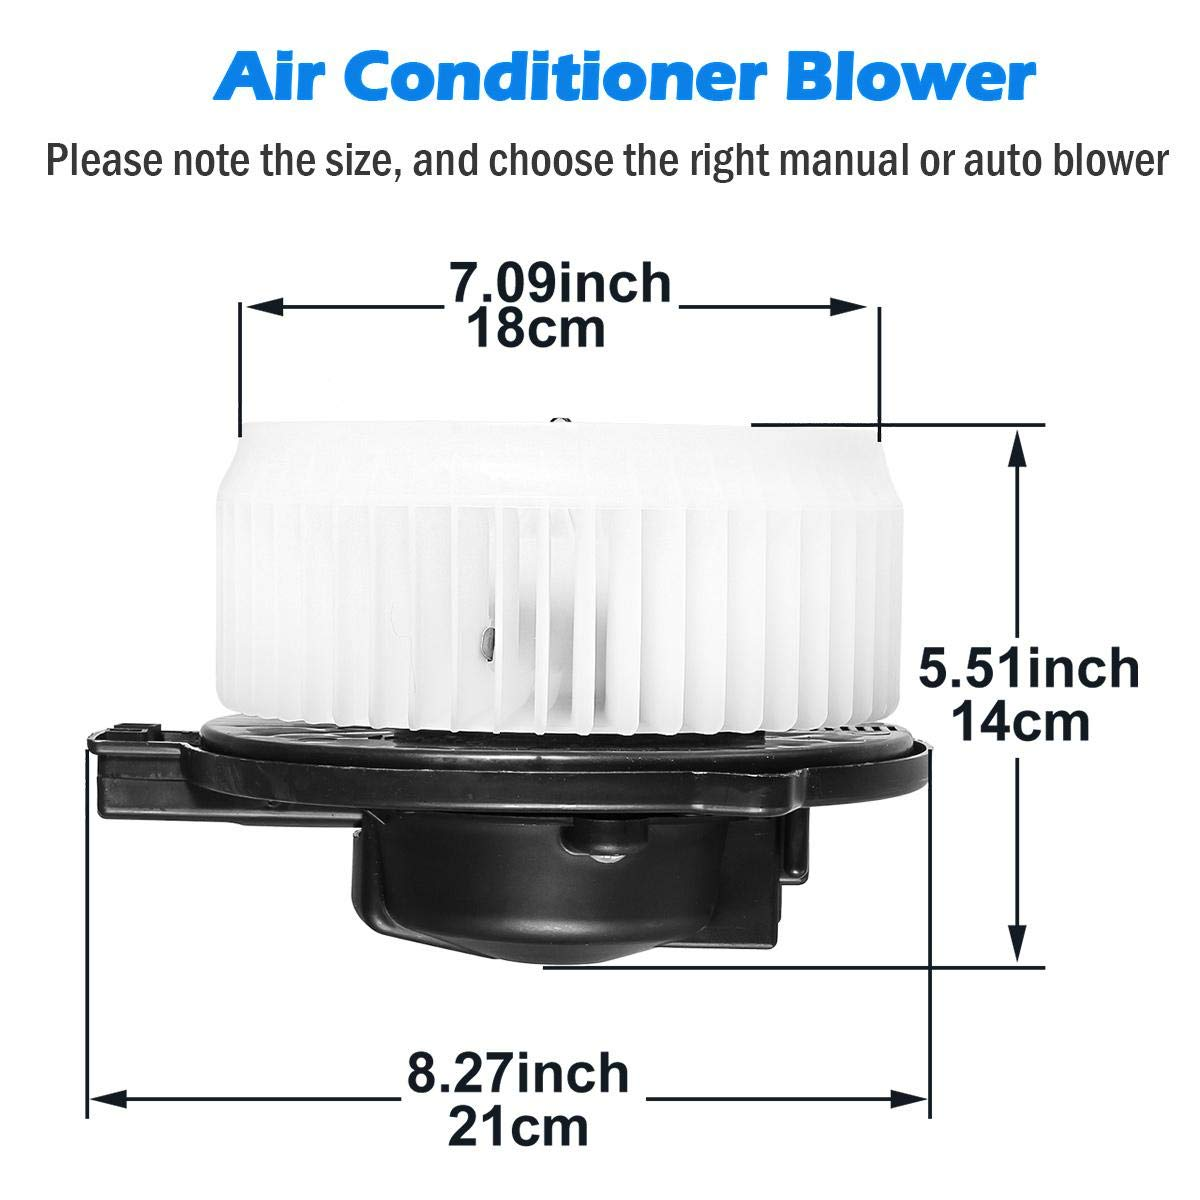 AUTEX HVAC Blower Motor Assembly Compatible with Acura RL 05-12,Honda Odyssey 2005-2010,Honda Ridgeline 06-07 Blower Motor Air Conditioner with Fan Cage 700192